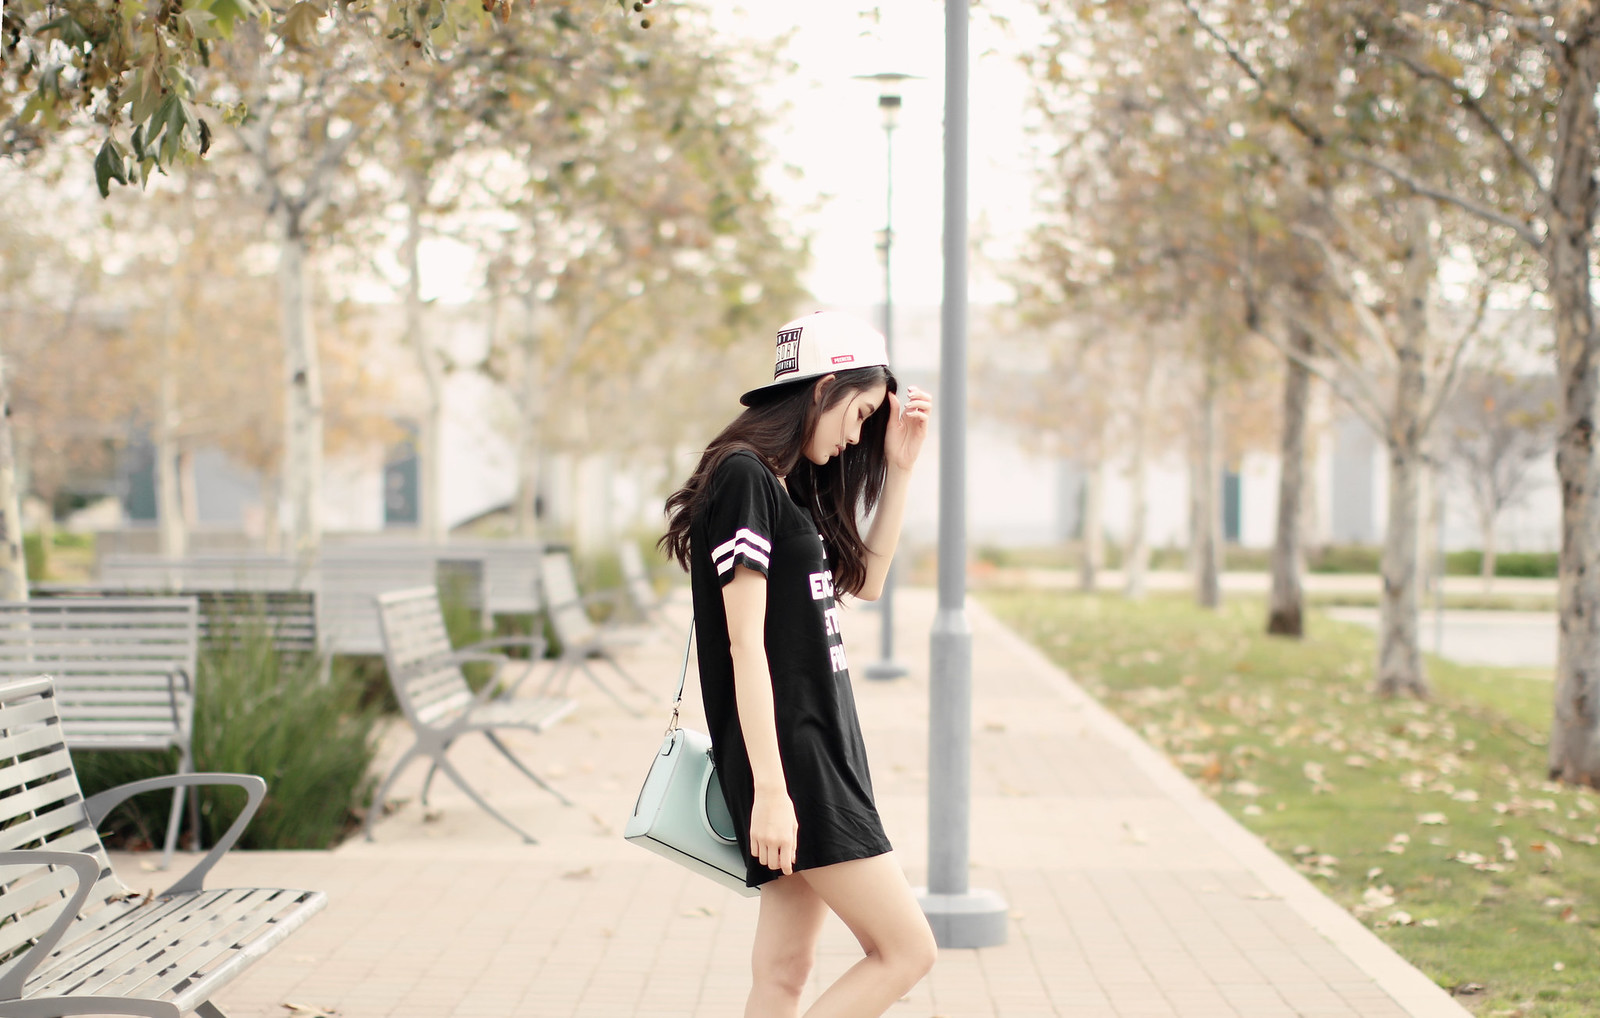 1857-ootd-fashion-athleisure-sporty-chic-forever21-tshirtdress-loungewear-daywear-nightshirt-clothestoyouuu-elizabeeetht